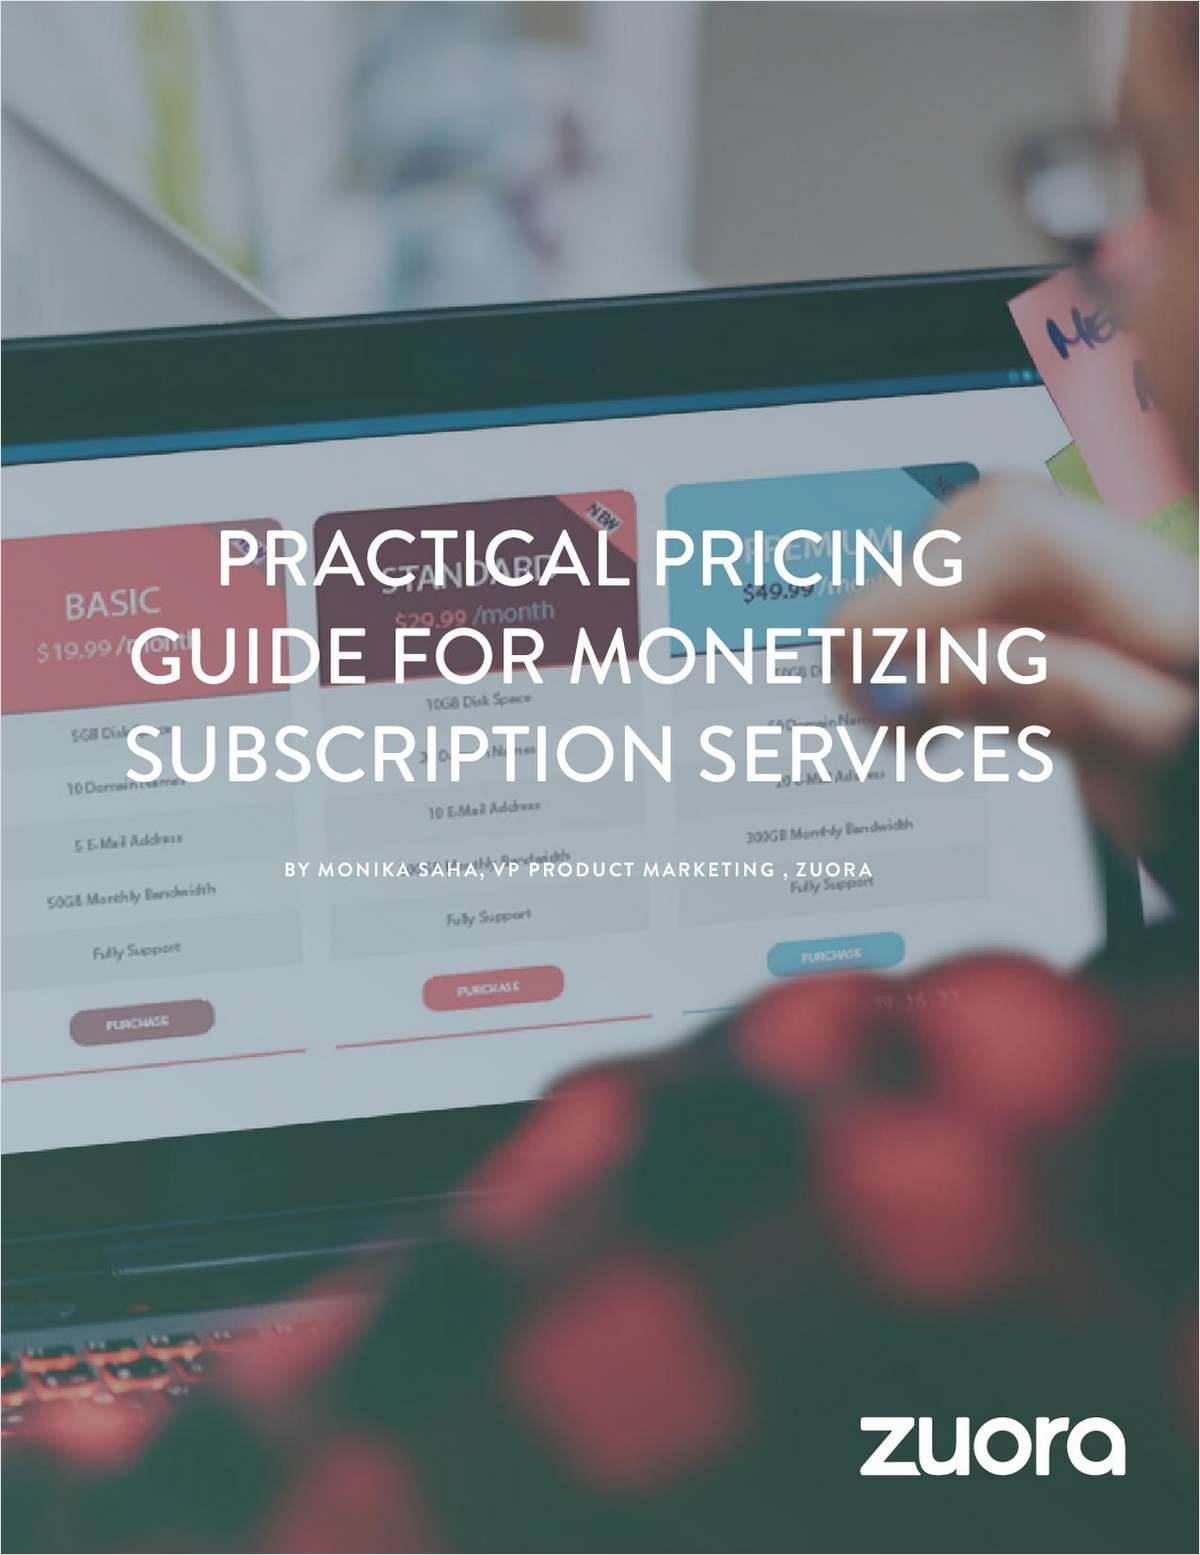 Practical Pricing Guide for Monetizing Subscription Services